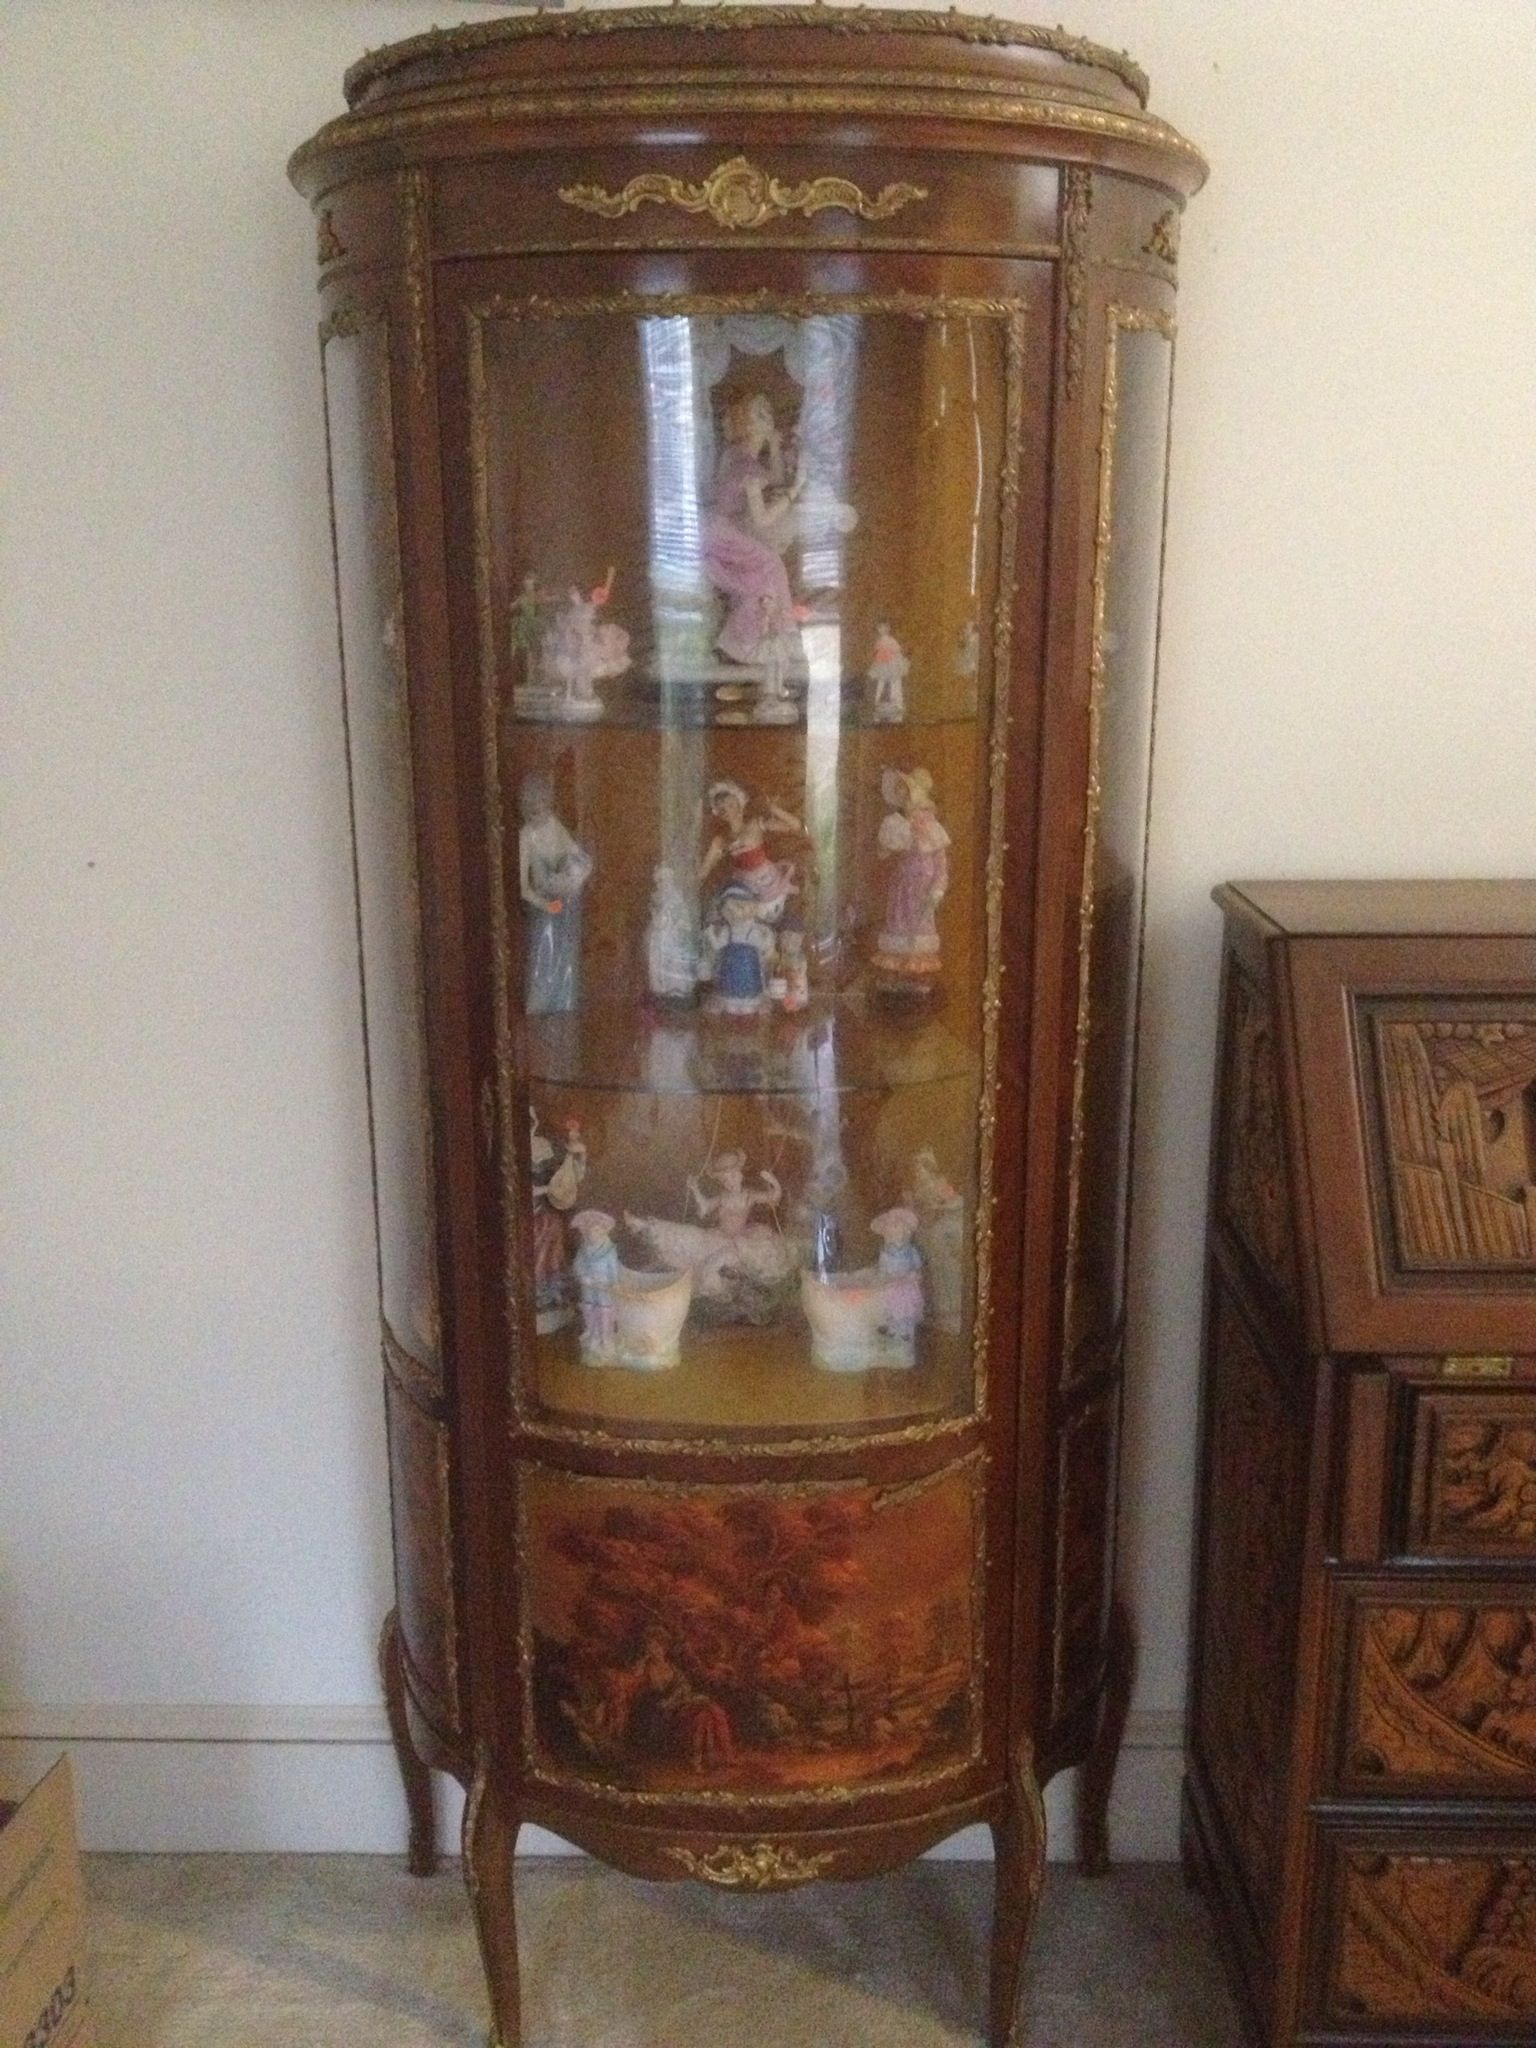 Antique Curio Cabinet filled with Dresden Dolls - Antique Curio Cabinet Filled With Dresden Dolls Design A House